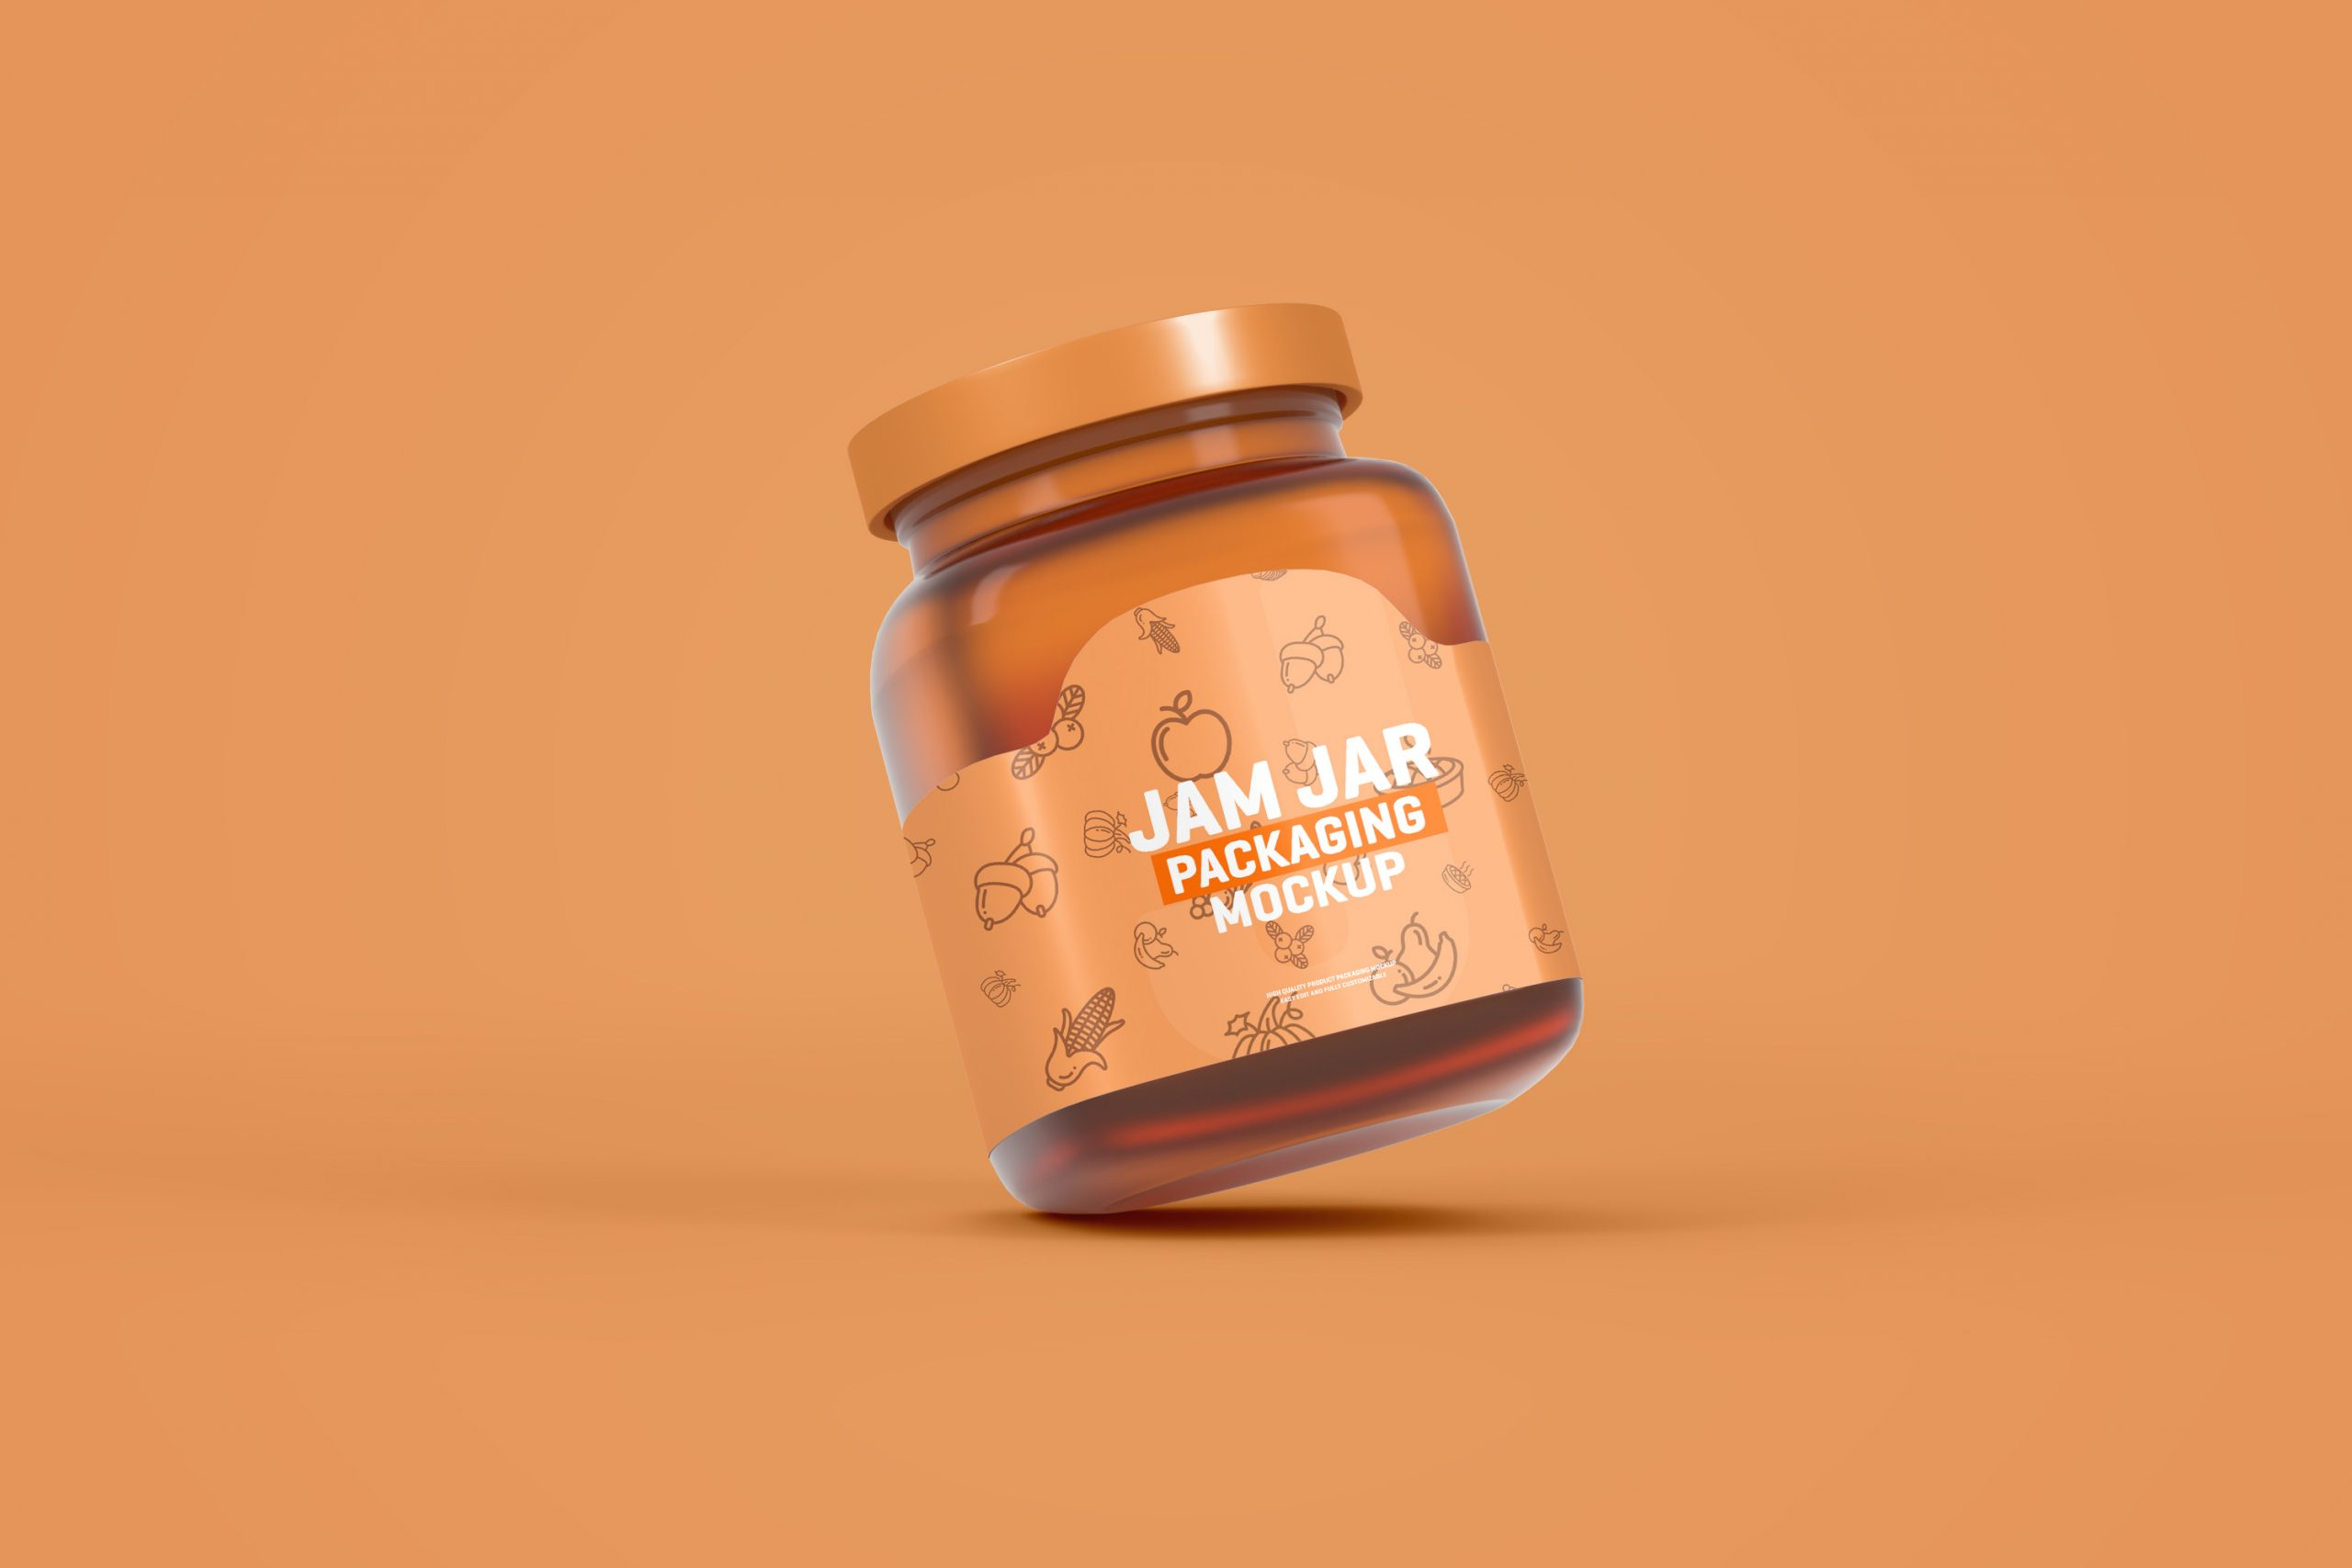 Glass Jam Jar Packaging Mockup